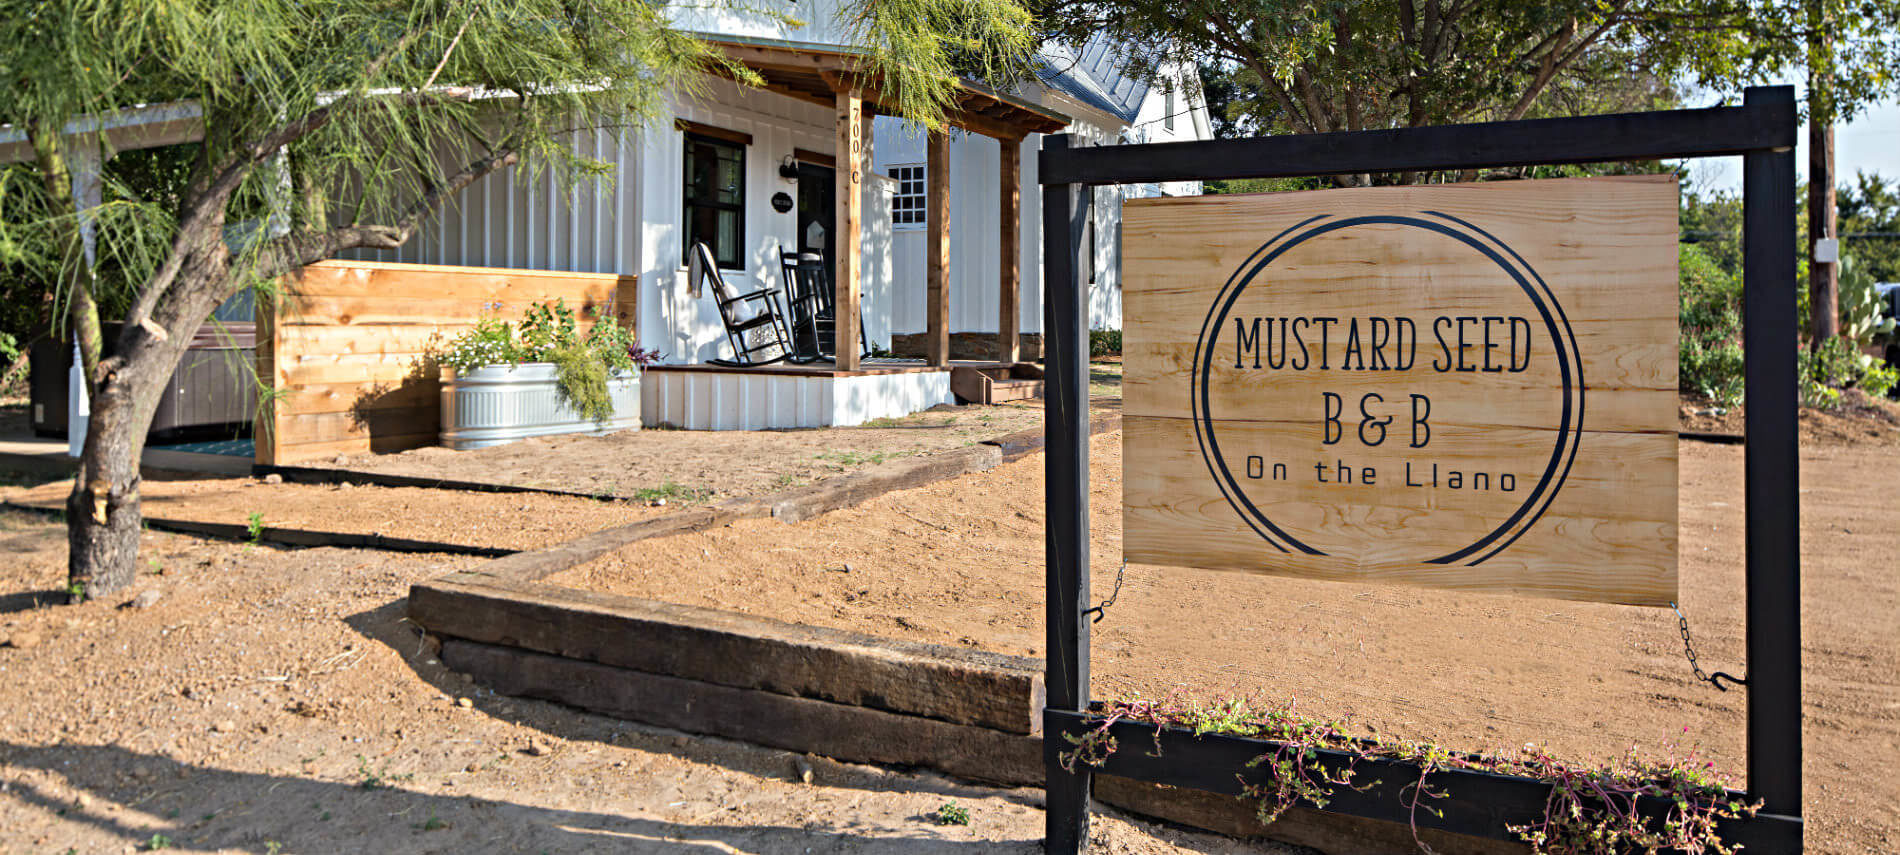 Rustic Mustard Seed B&B on the Llano sign with view of white cottages in the background